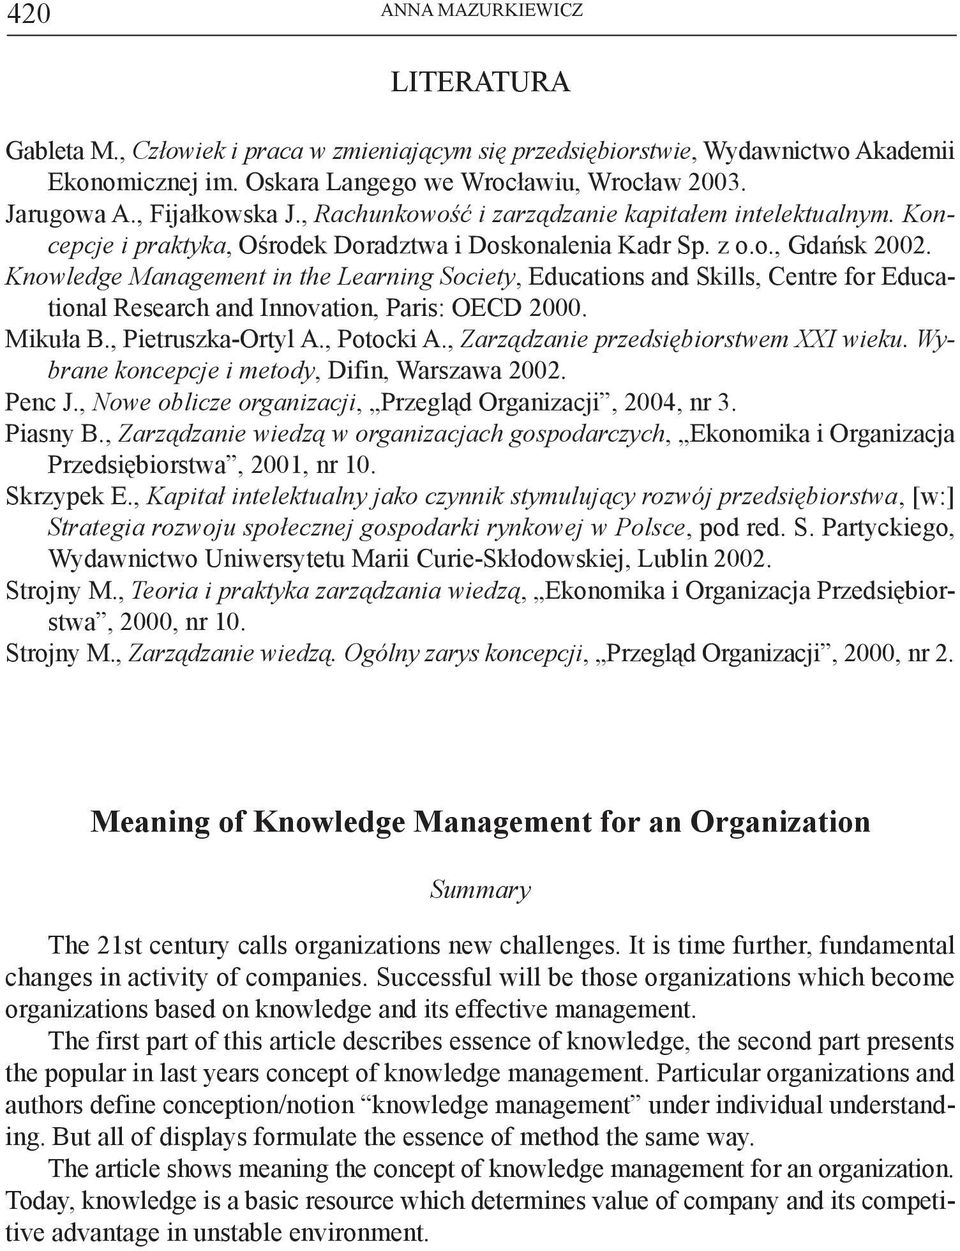 Knowledge Management in the Learning Society, Educations and Skills, Centre for Educational Research and Innovation, Paris: OECD 2000. Mikuła B., Pietruszka-Ortyl A., Potocki A.